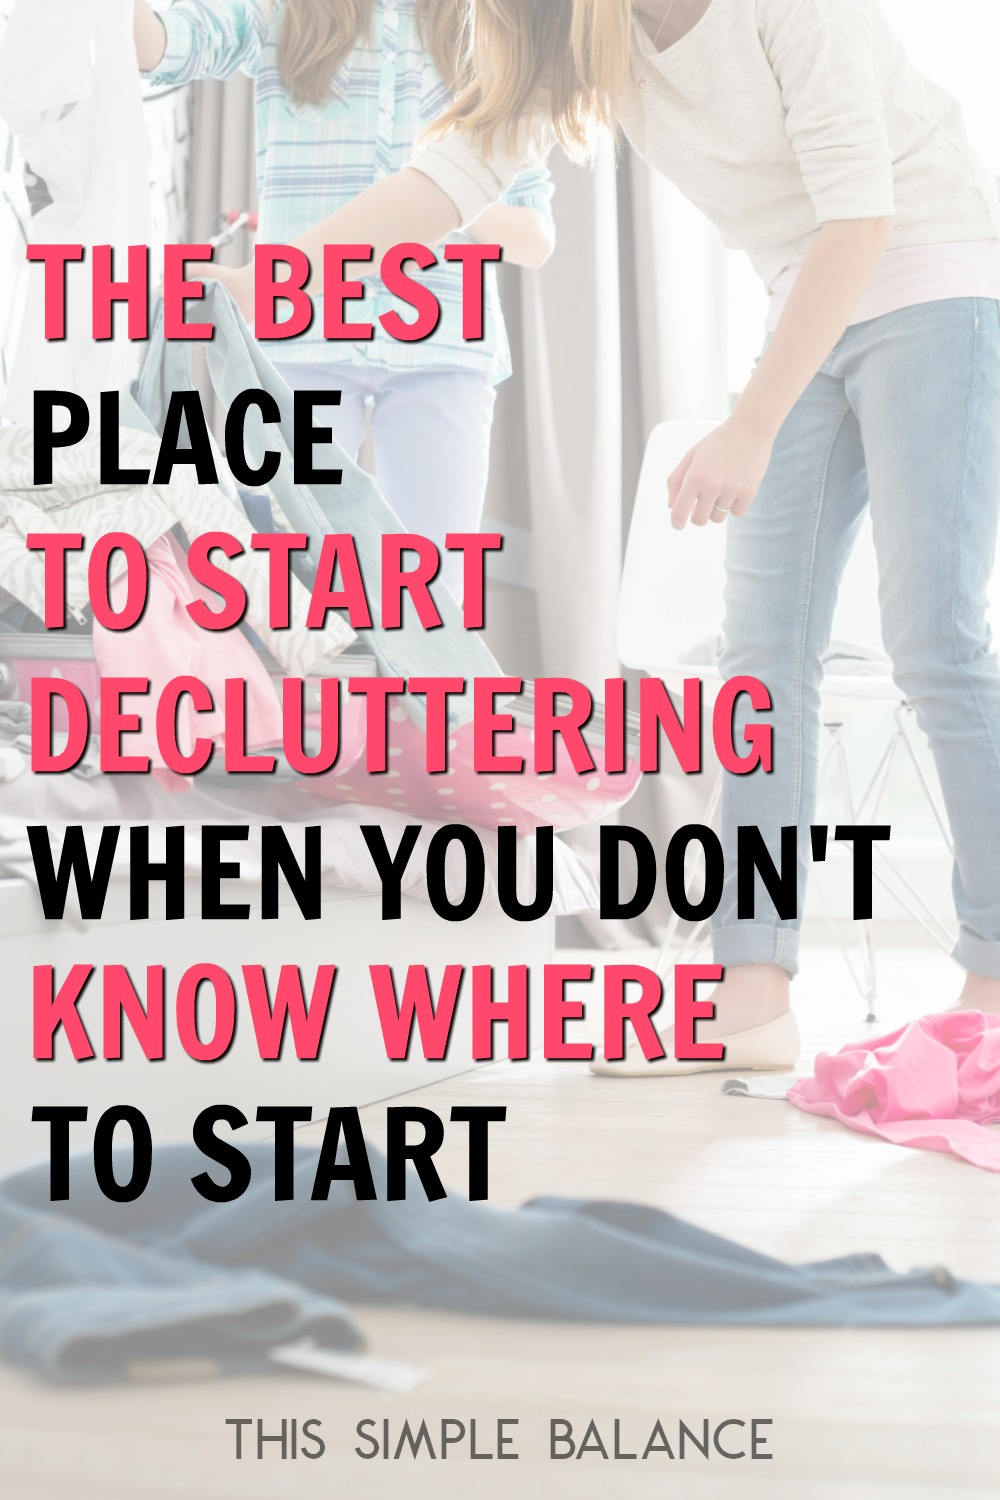 The best place to start decluttering when you don't know where to start.